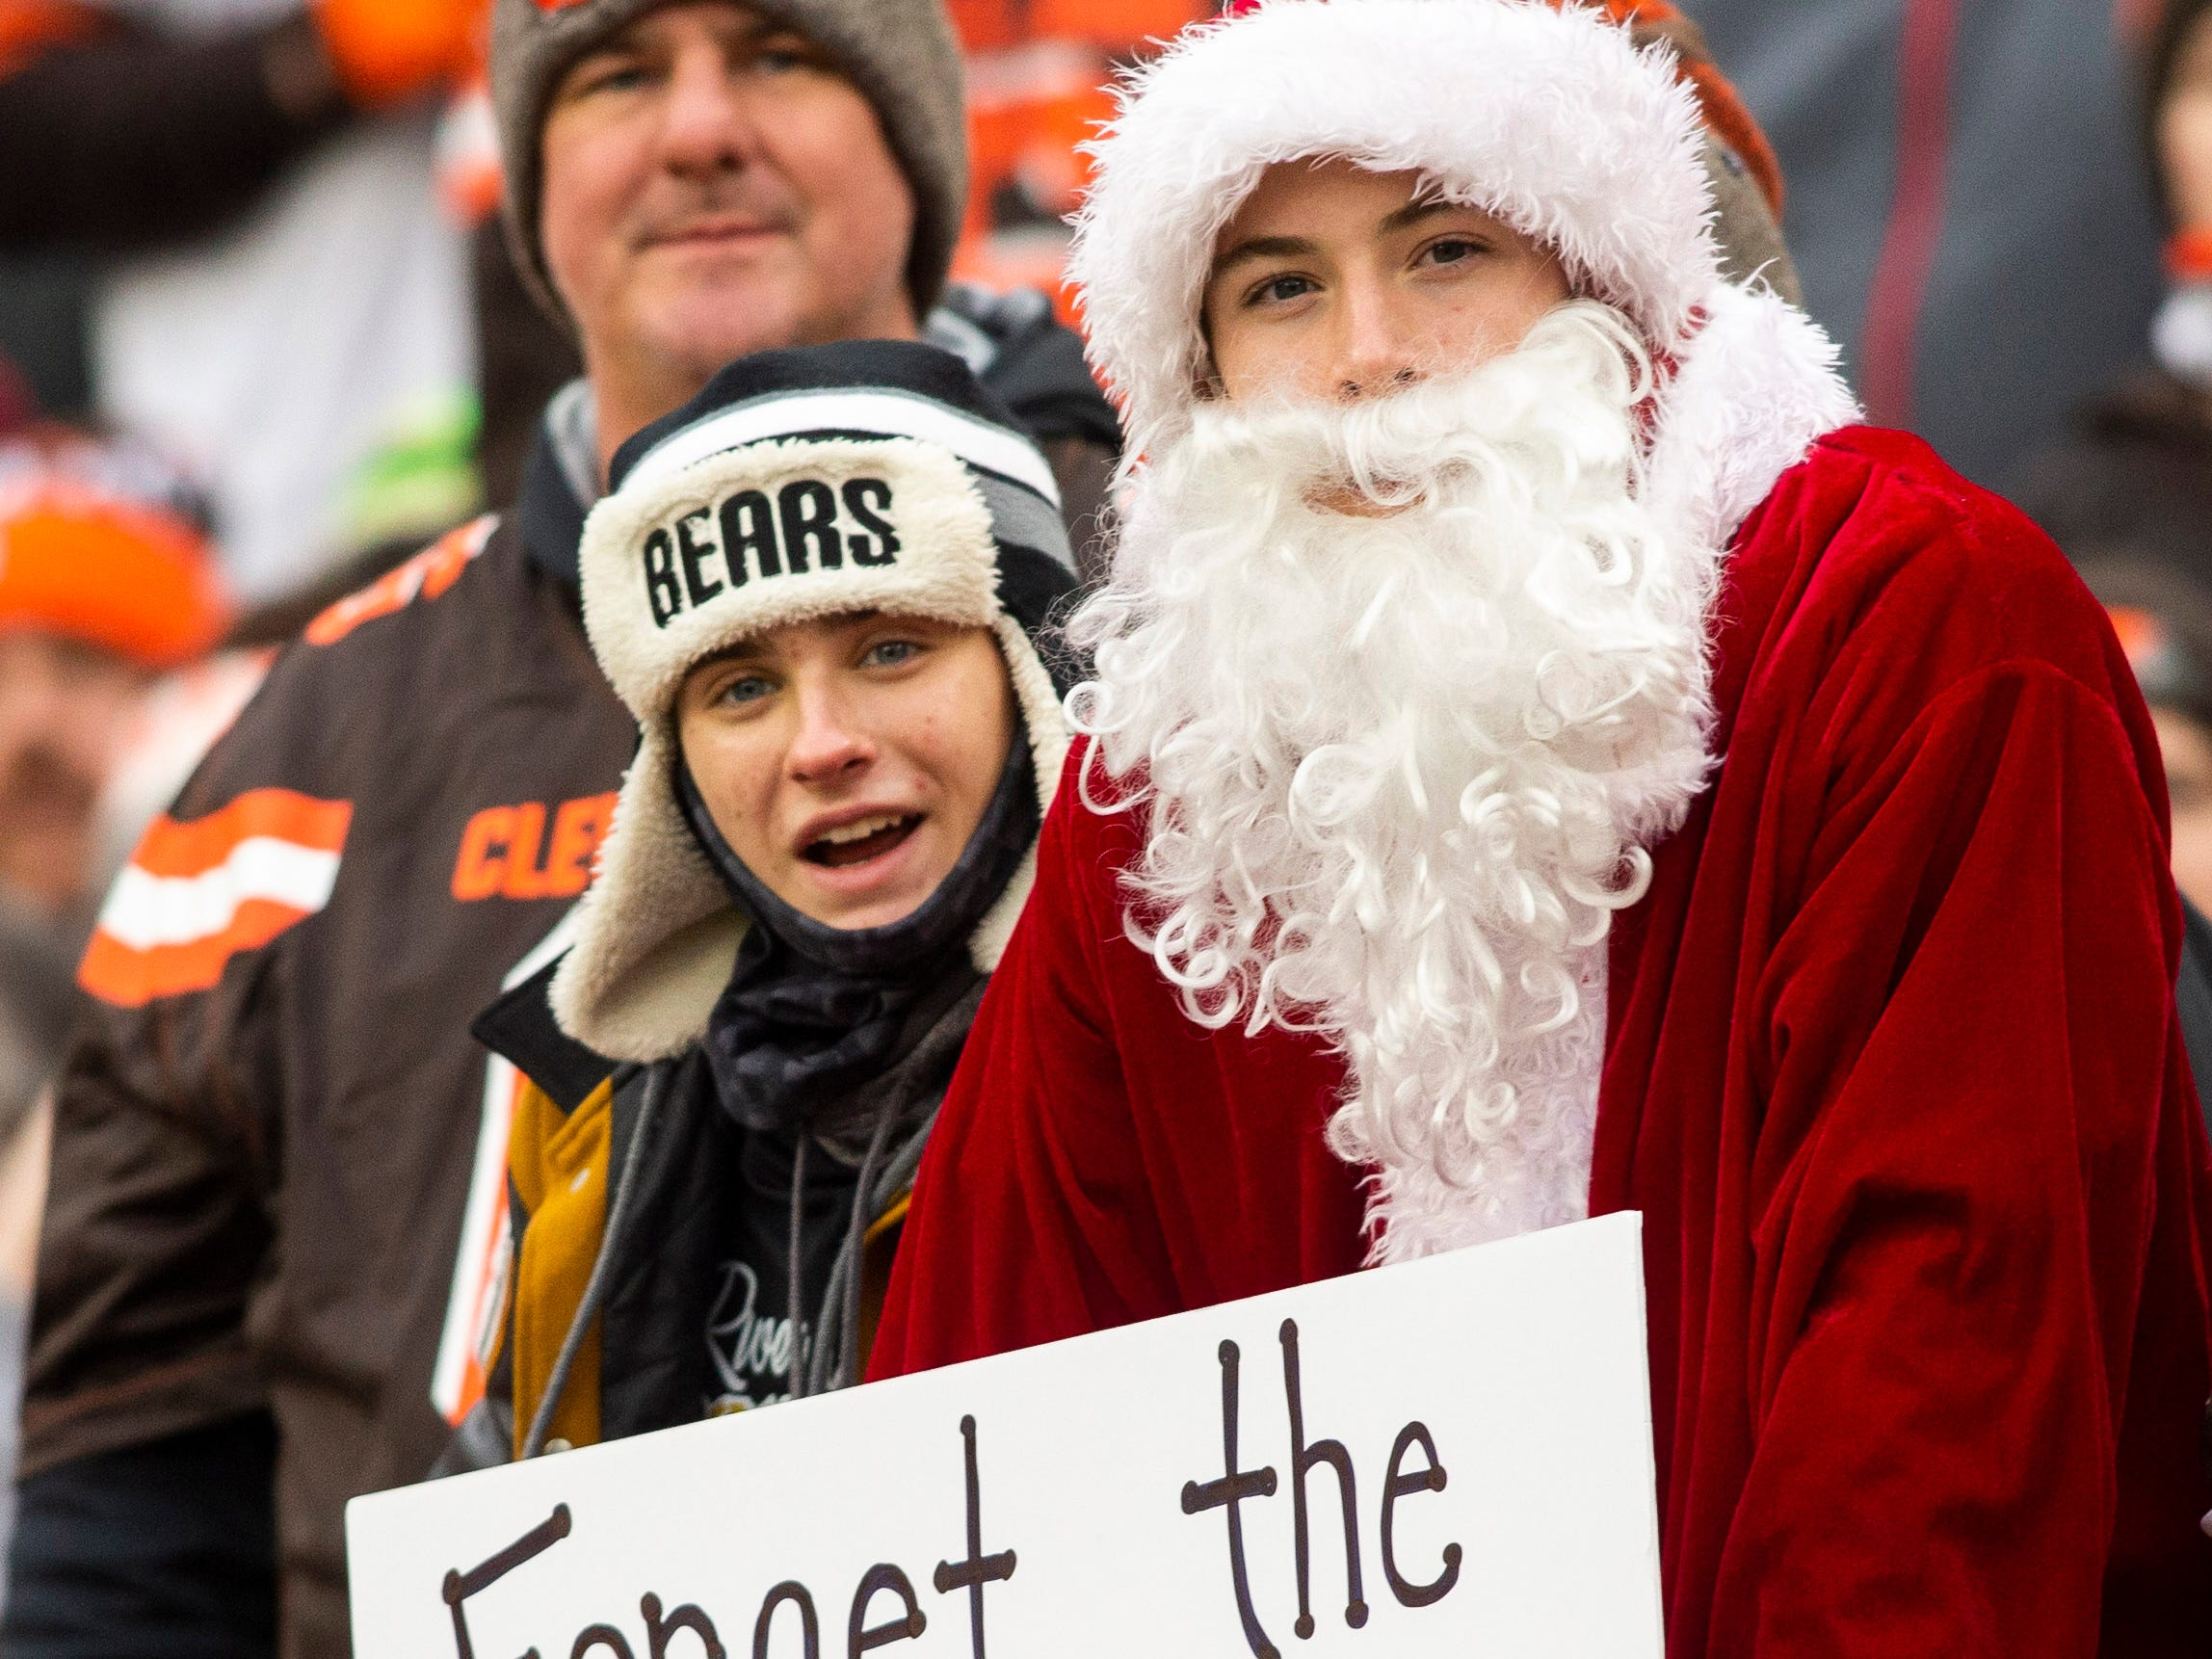 A Cleveland Browns fan holds a sign up during the second quarter of the game between the Cleveland Browns and the Cincinnati Bengals at FirstEnergy Stadium.